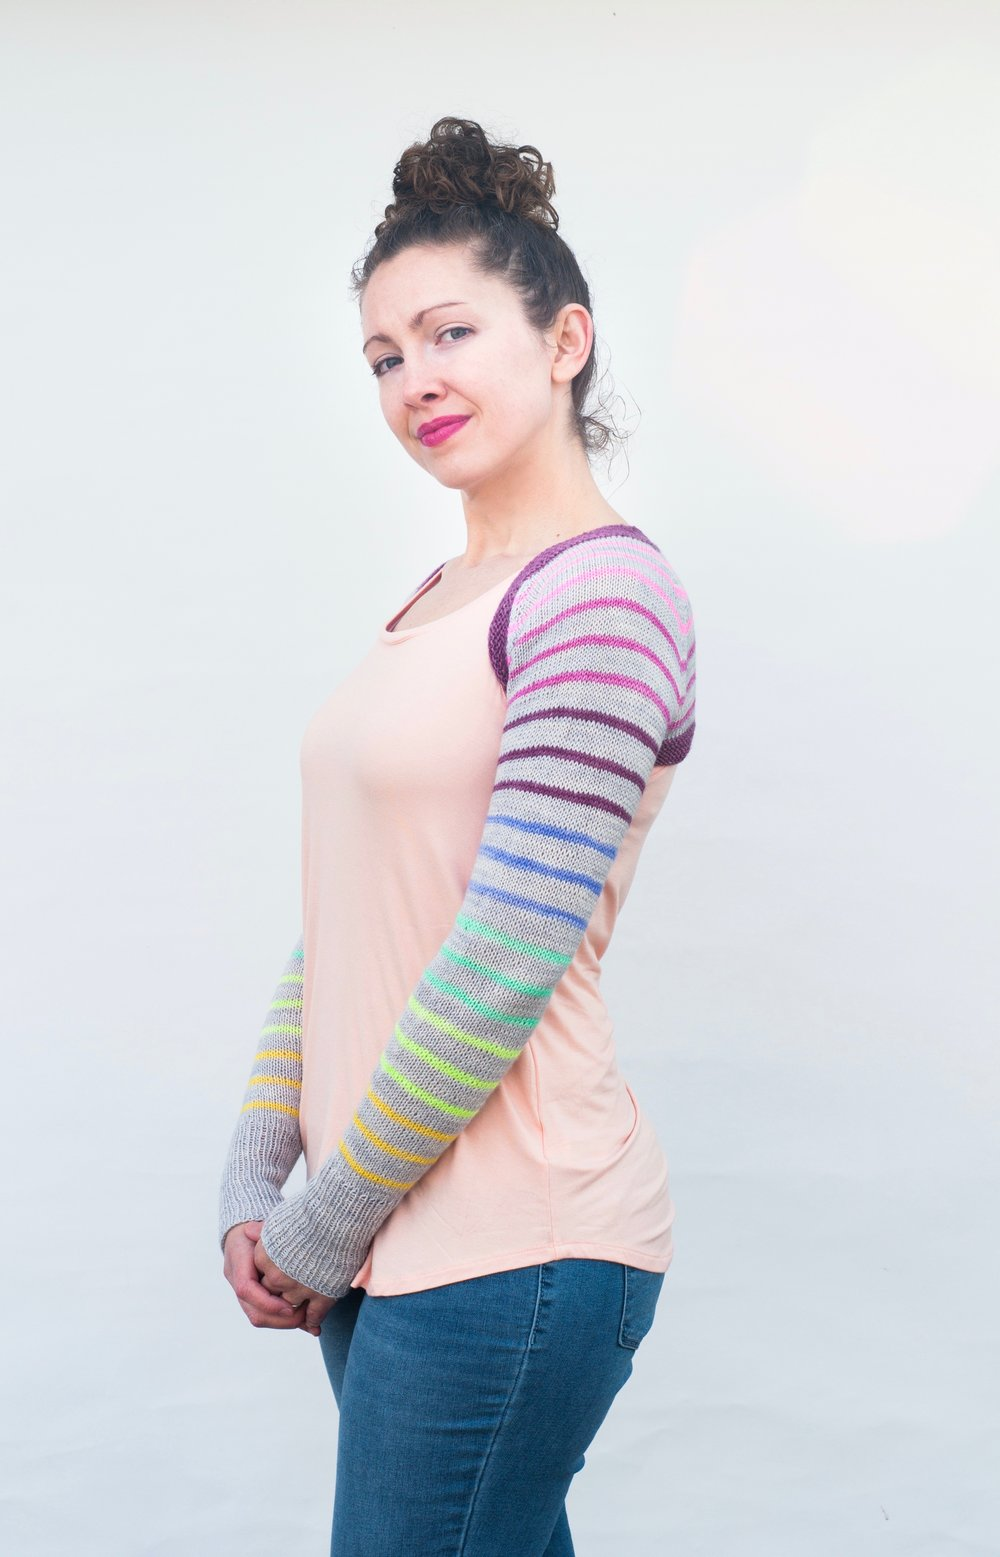 Urban Ballerina Shrug